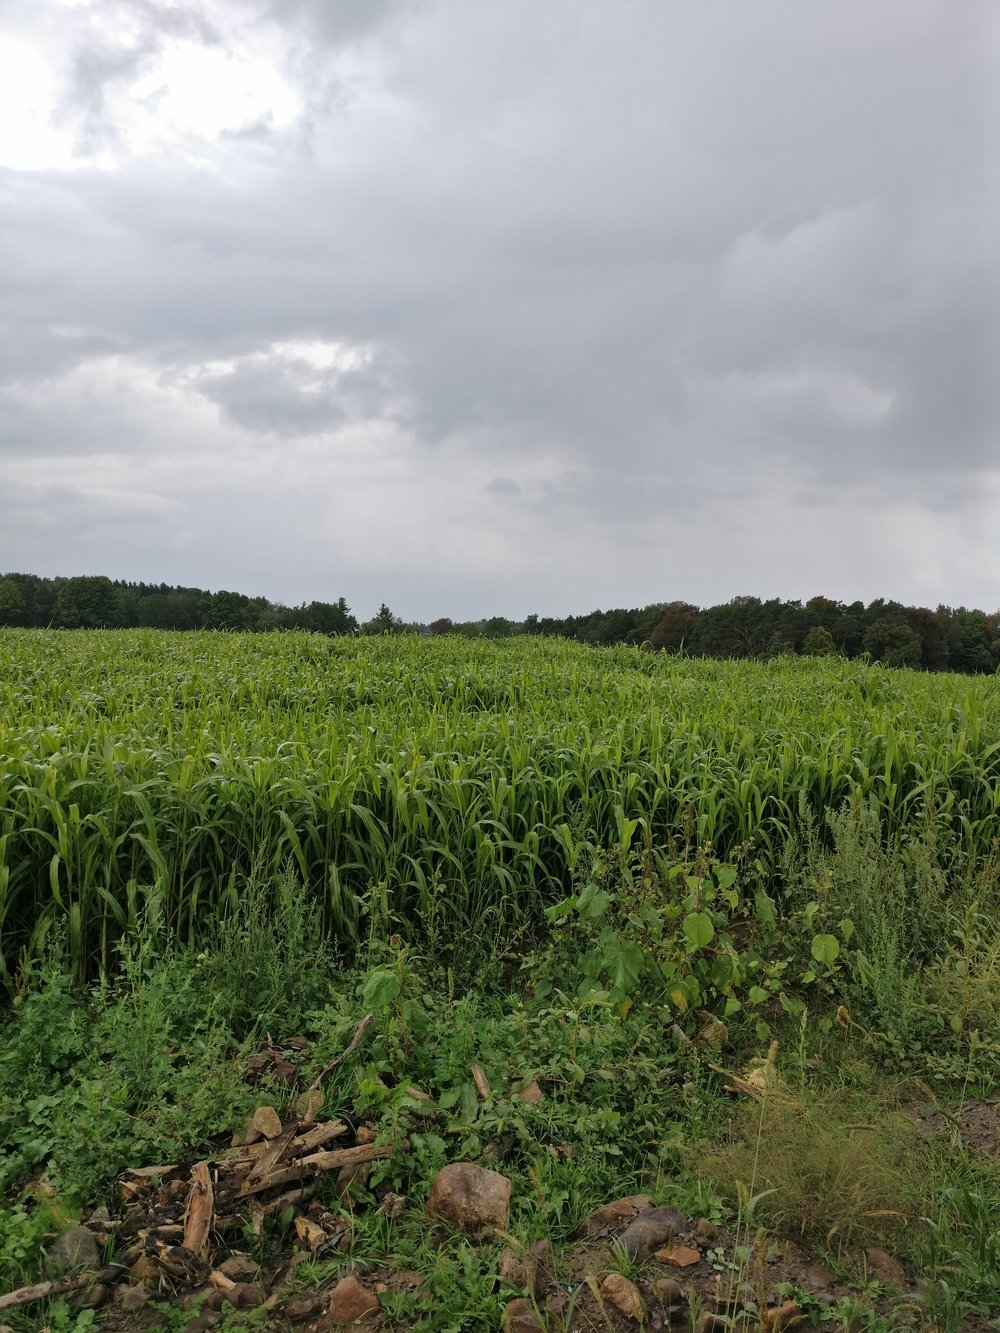 Sudan grass single cut in September 2016. Photo provided.